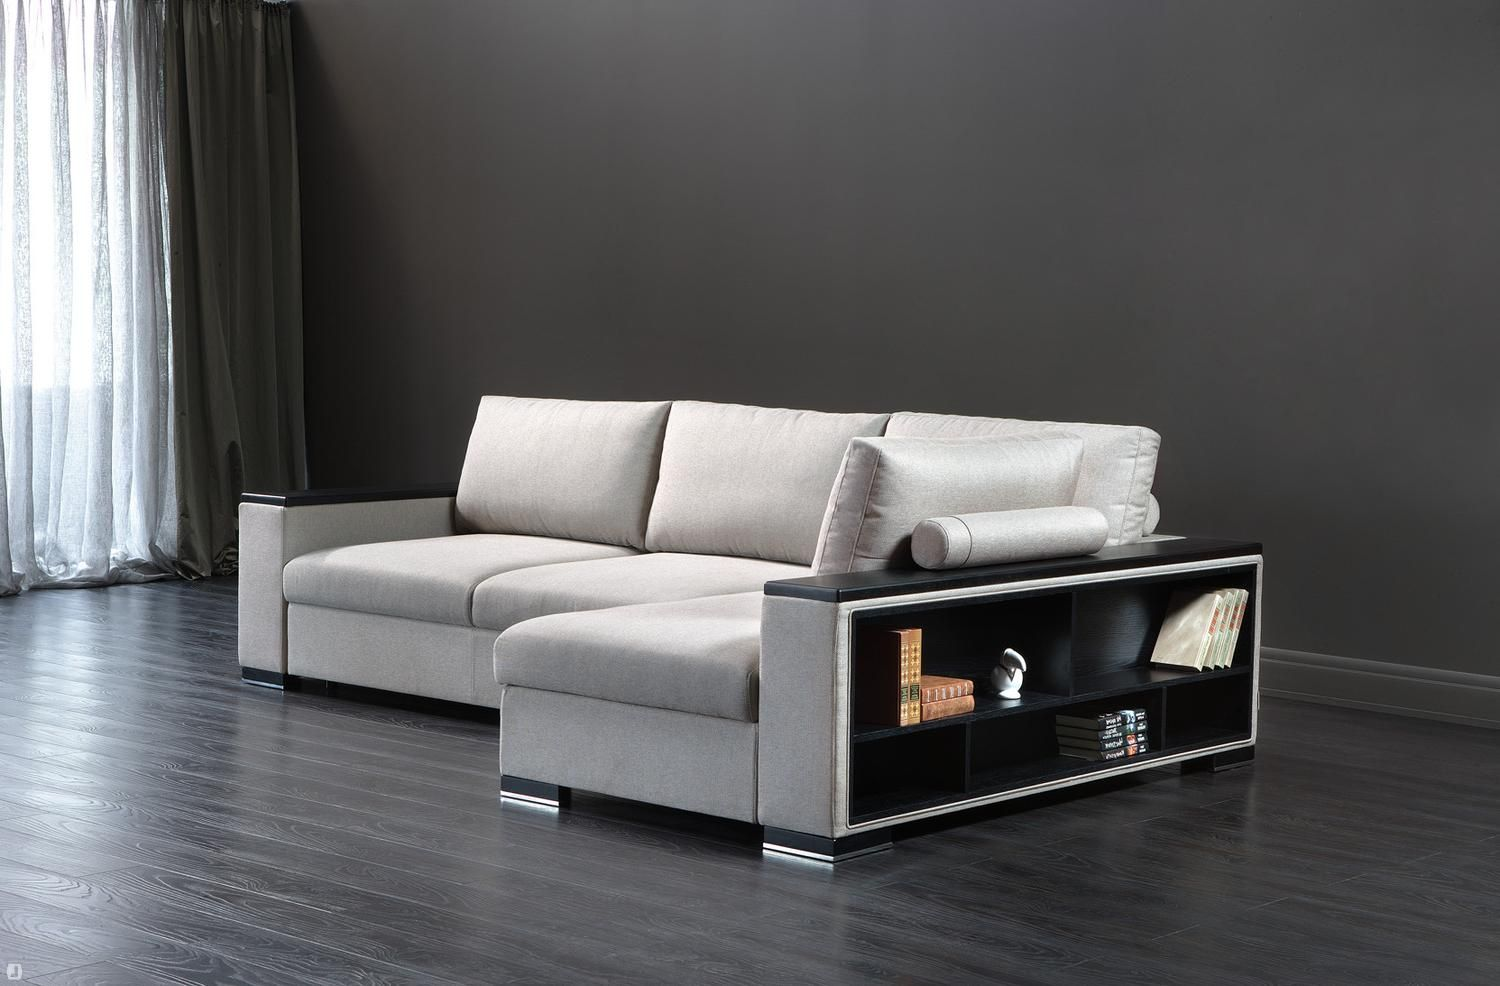 Broyhill Sofa wonderful white sleeper sofa design with storage beside